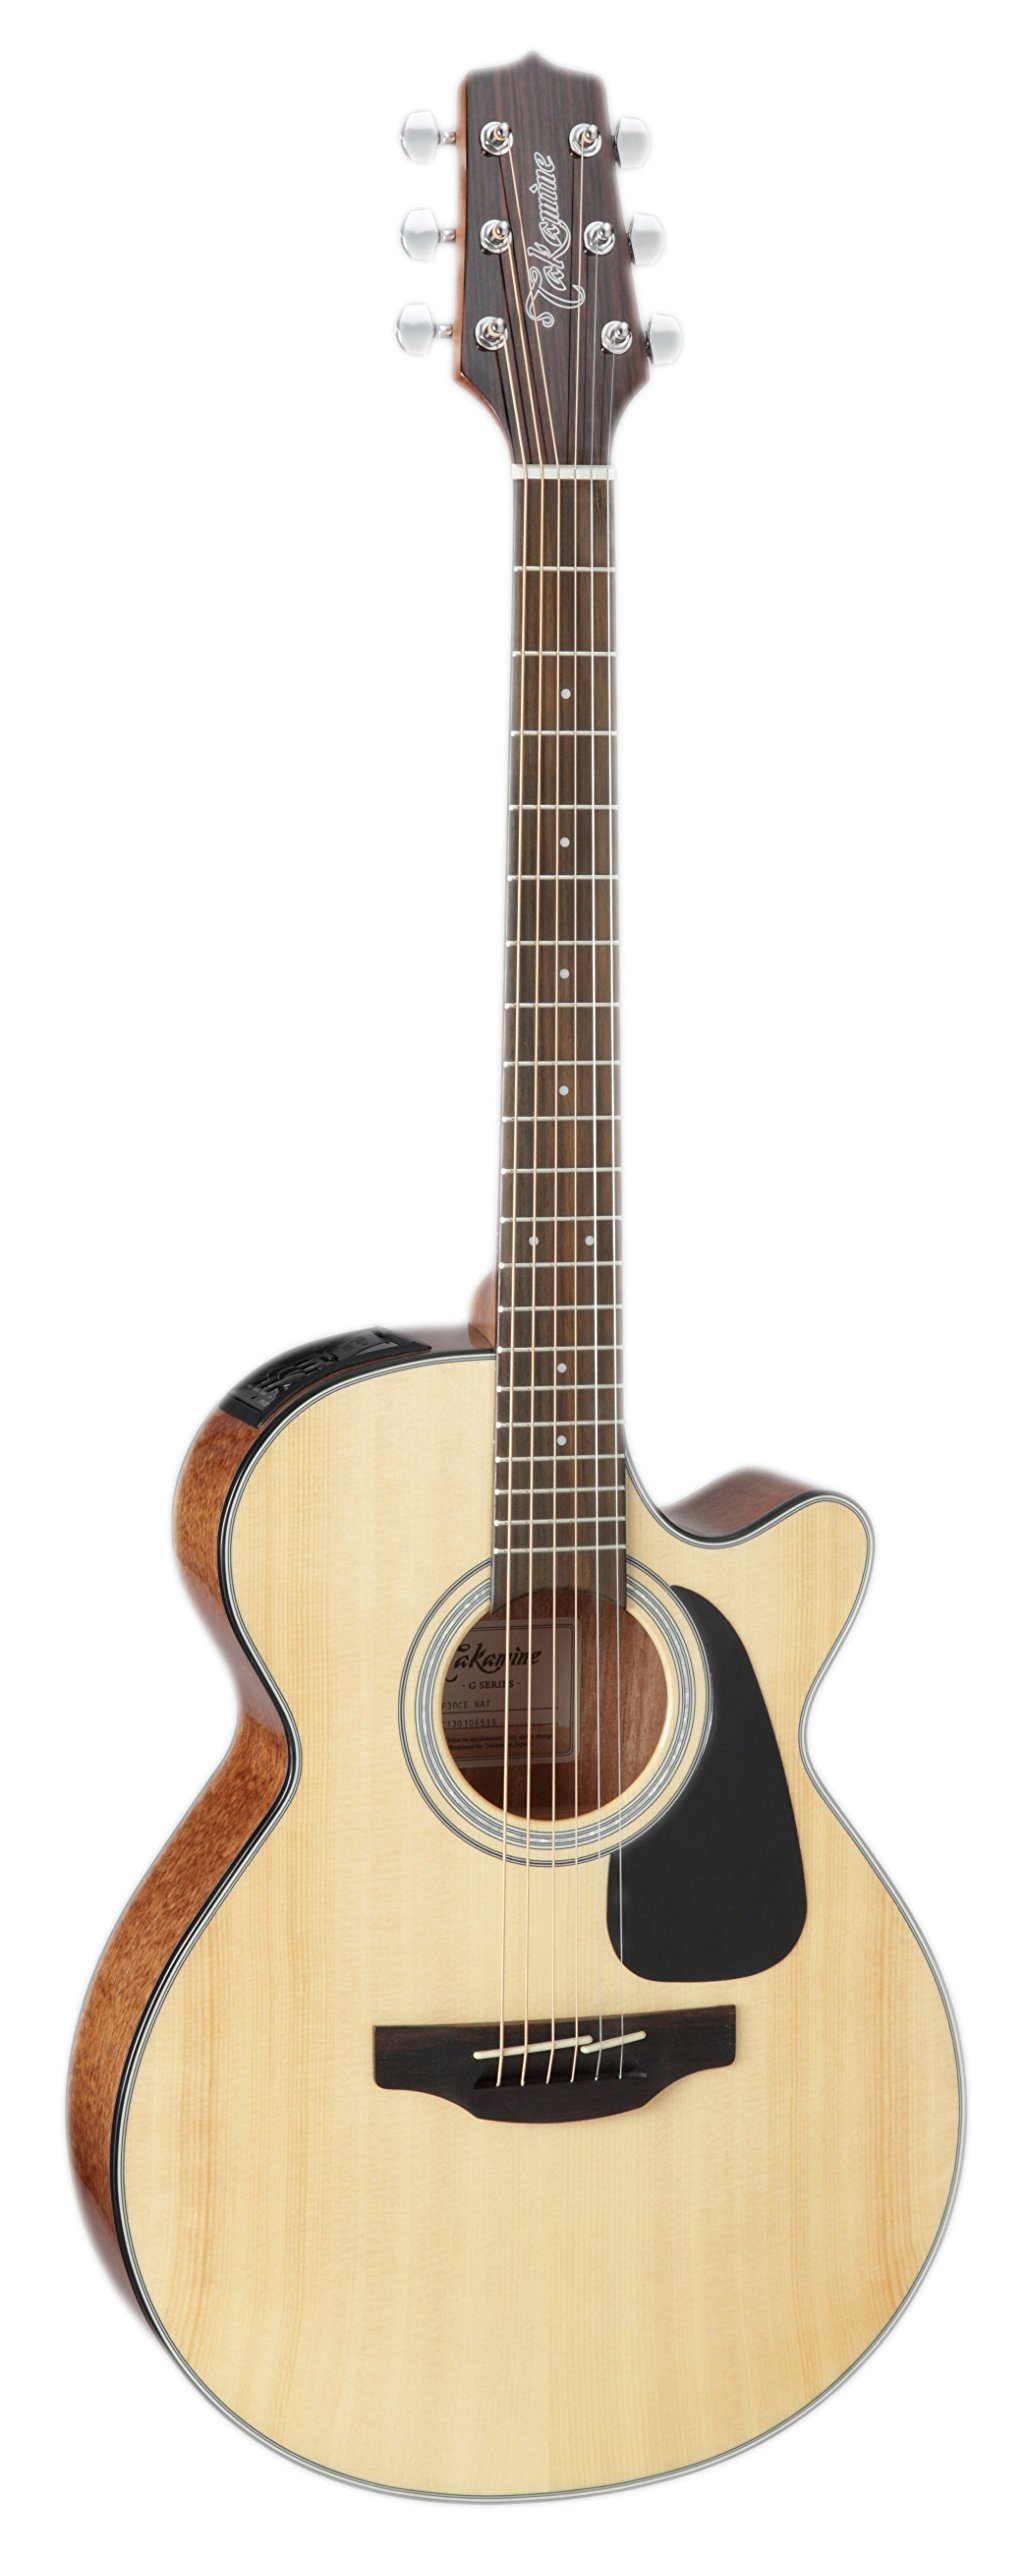 Takamine GF30CE-NAT FXC Cutaway Acoustic-Electric Guitar, Natural by Takamine